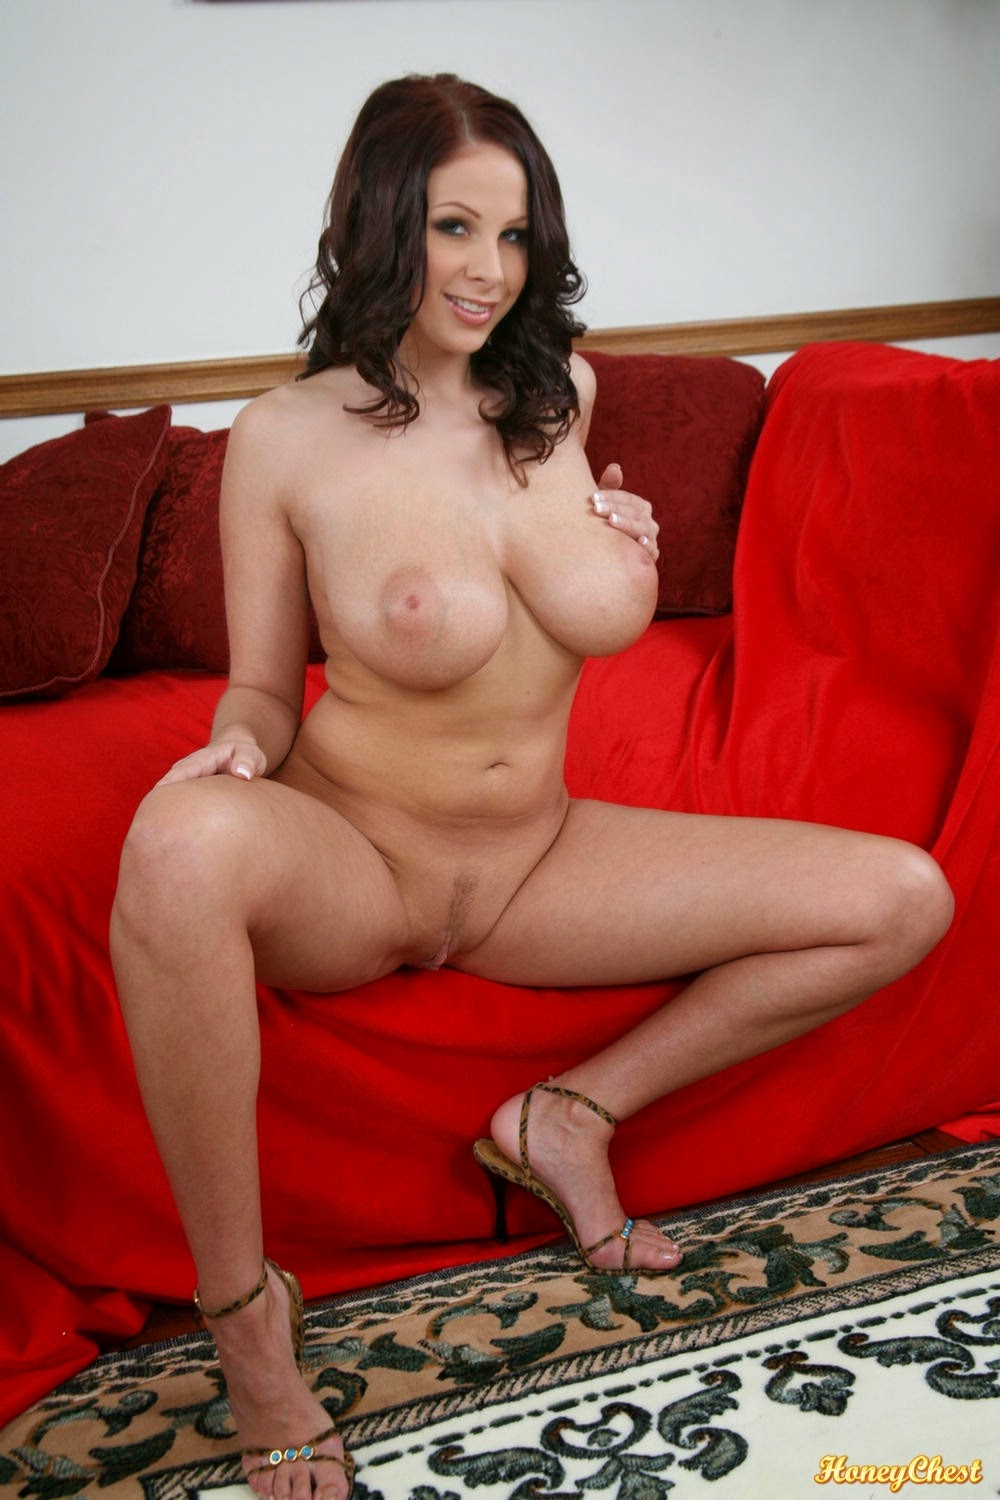 from Corbin gianna michaels glasses nude